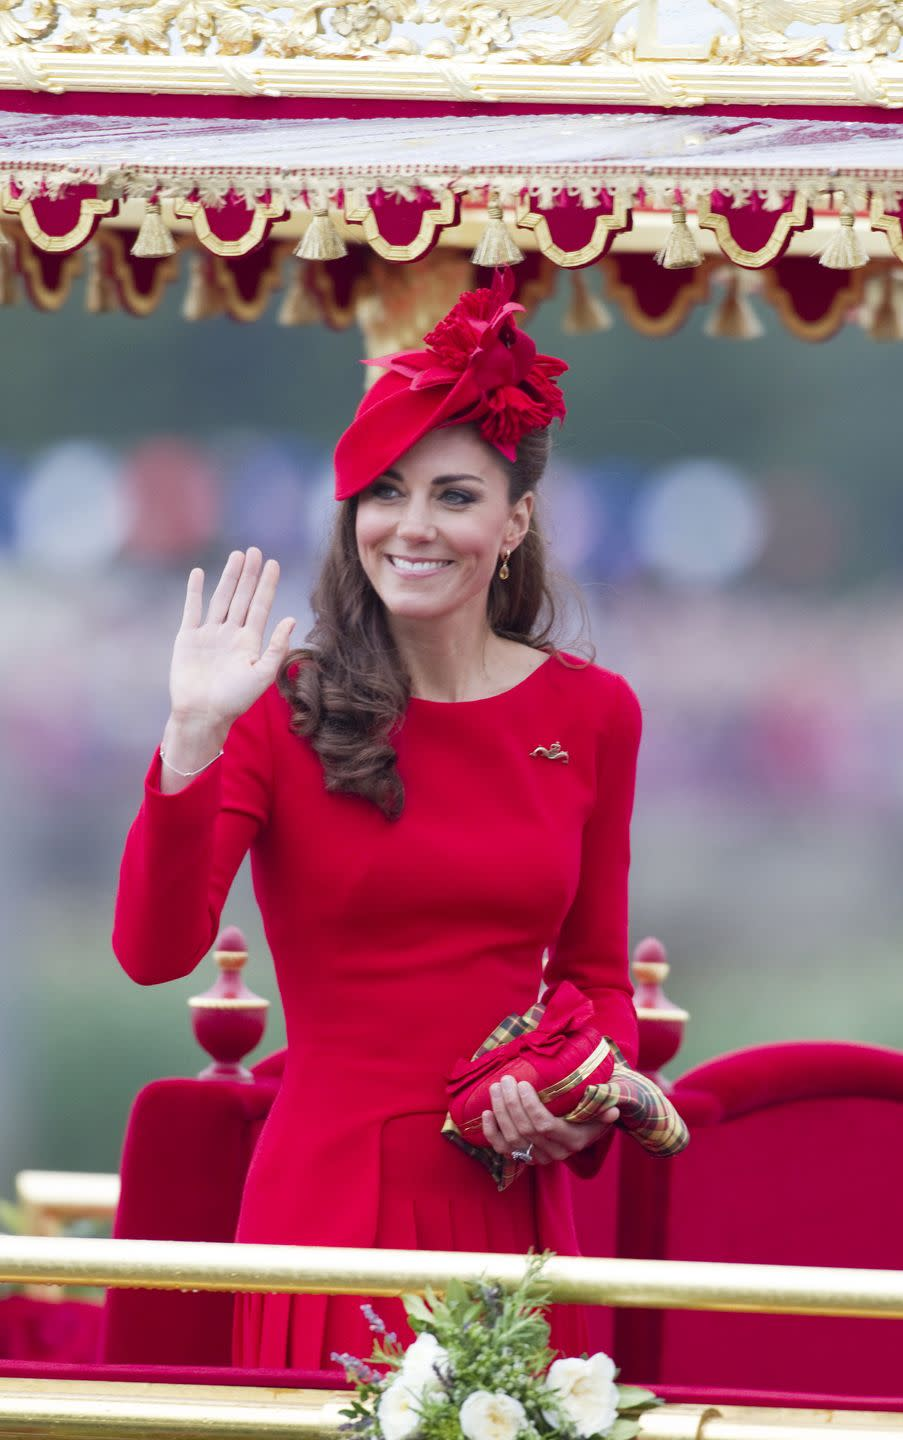 """<p>Kate's wardrobe has always been a subject of controversy. Her conservatively fashionable outfit choices are often called out for one thing or another. So it was unsurprising that she received <a href=""""http://www.dailymail.co.uk/femail/article-2154264/Kate-Middleton-Duchess-Cambridges-scarlet-Diamond-Jubilee-dress-stole-show.html"""" rel=""""nofollow noopener"""" target=""""_blank"""" data-ylk=""""slk:backlash for wearing a bright red dress"""" class=""""link rapid-noclick-resp"""">backlash for wearing a bright red dress</a> to board the royal barge """"Spirit of Chartwell"""" for the Thames Diamond Jubilee Pageant. The rest of the royal family members wore muted colors. </p>"""